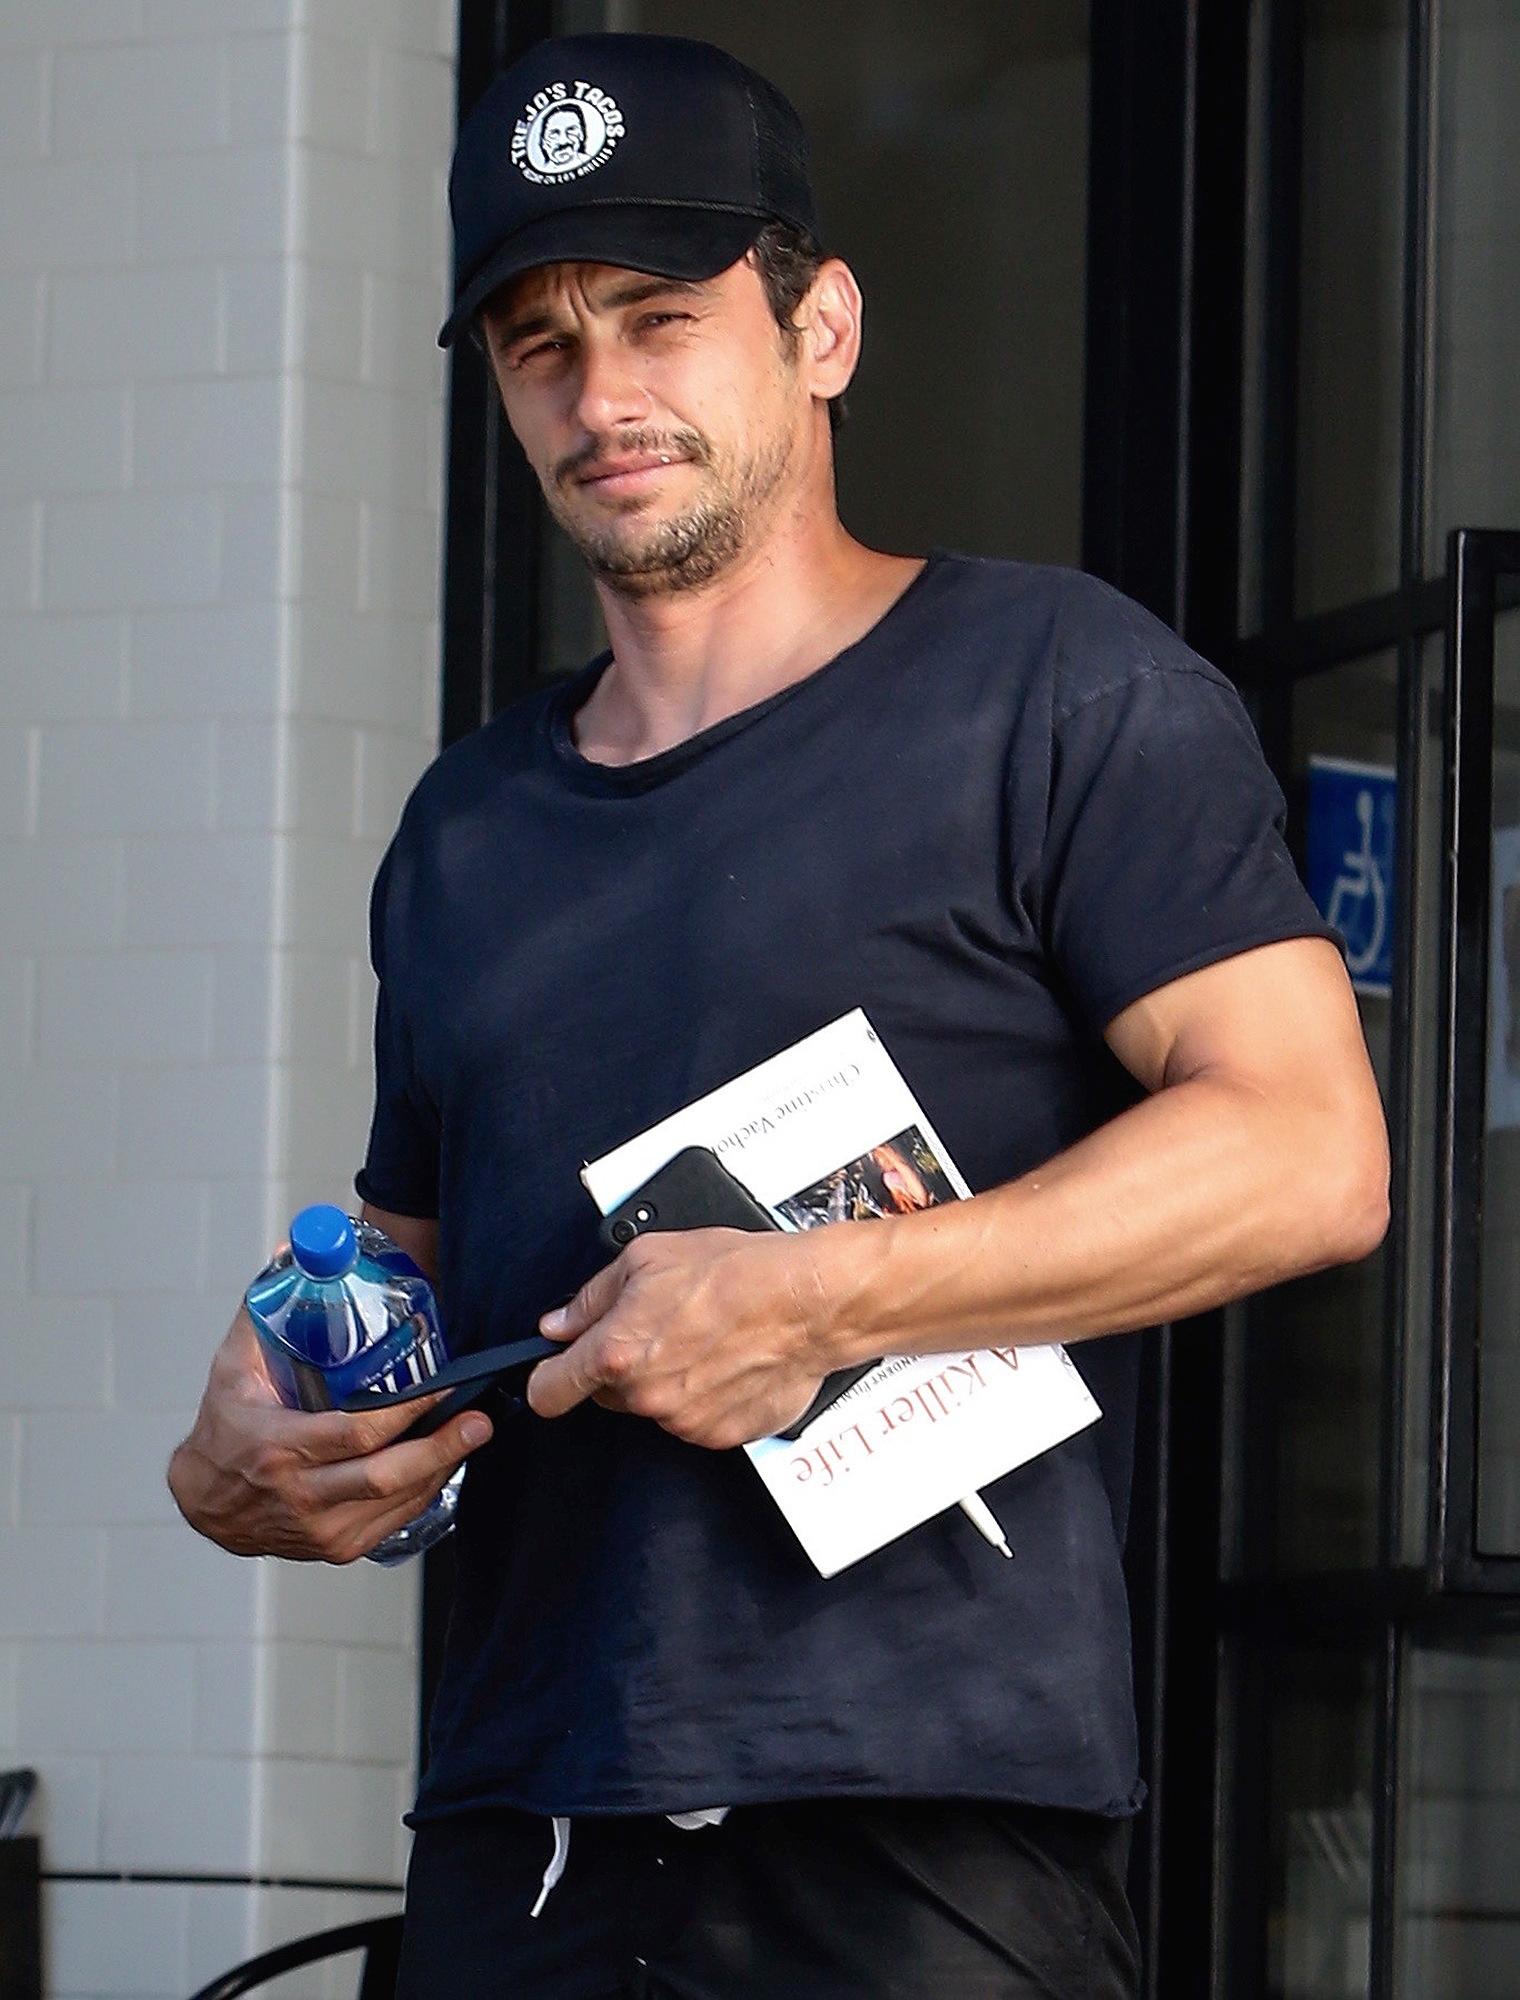 EXCLUSIVE: Actor James Franco is seen carrying the book 'A Killer Life' while out and about in Los Angeles